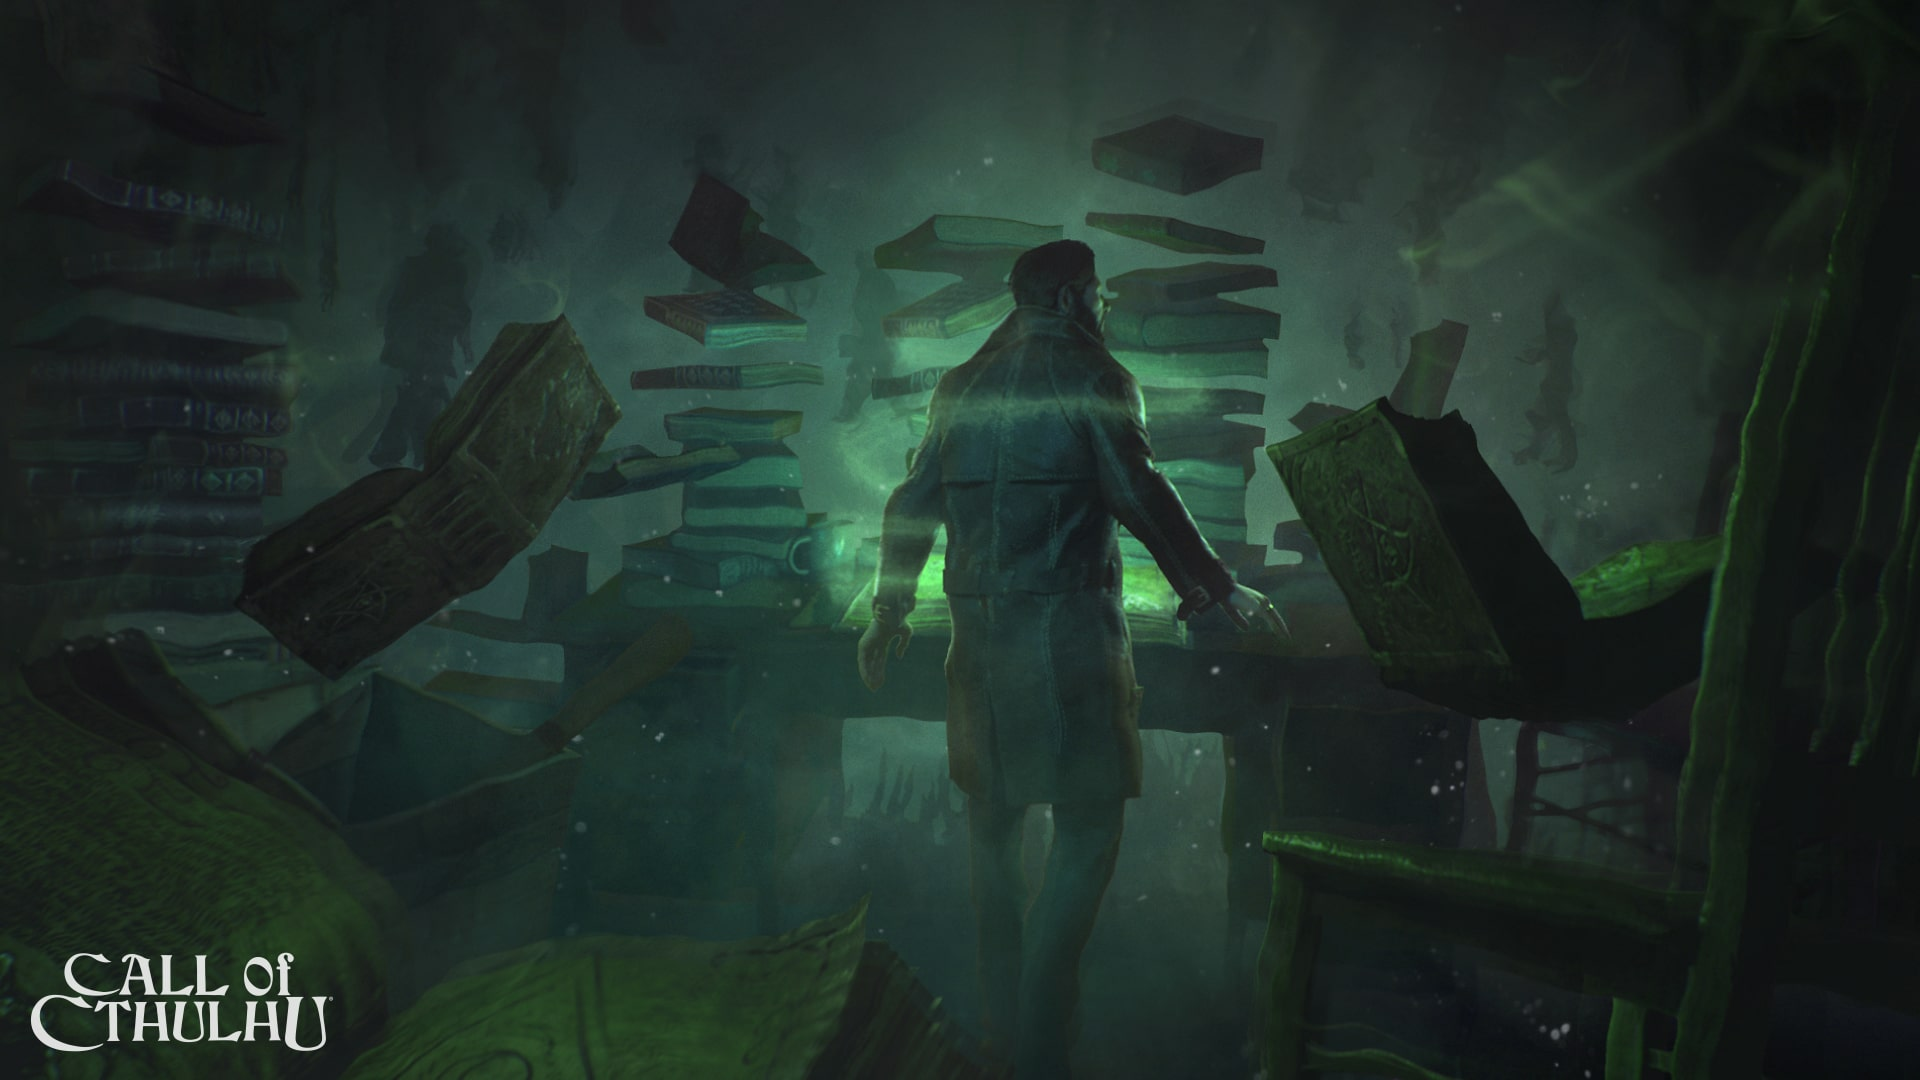 Call of Cthulhu Download PC